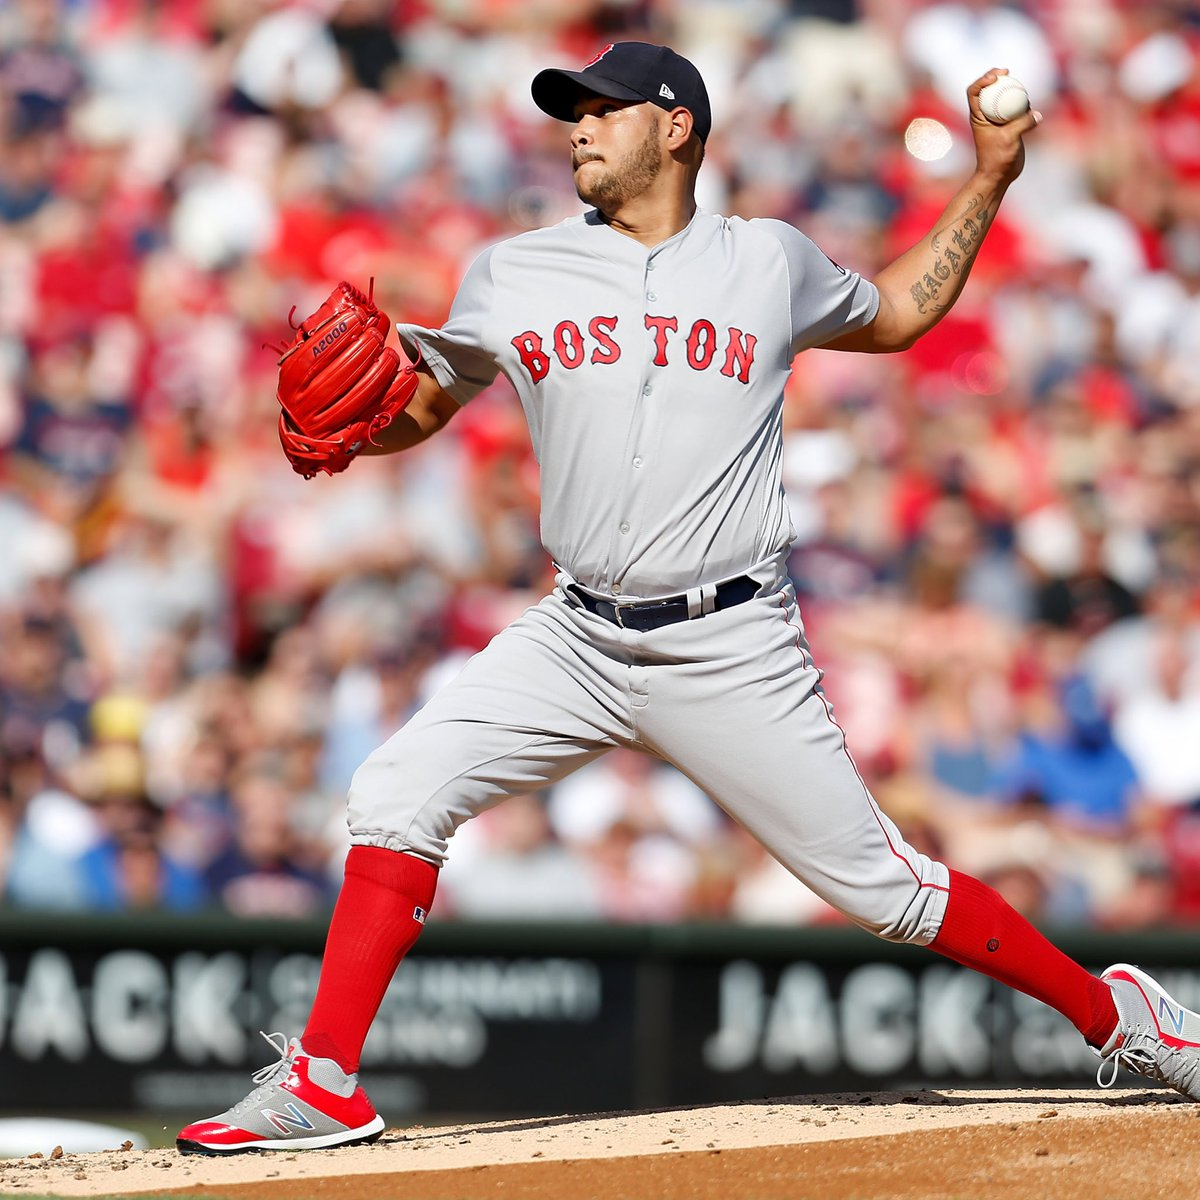 3 of the last 4 #RedSox victories have been shutouts with the pitching...